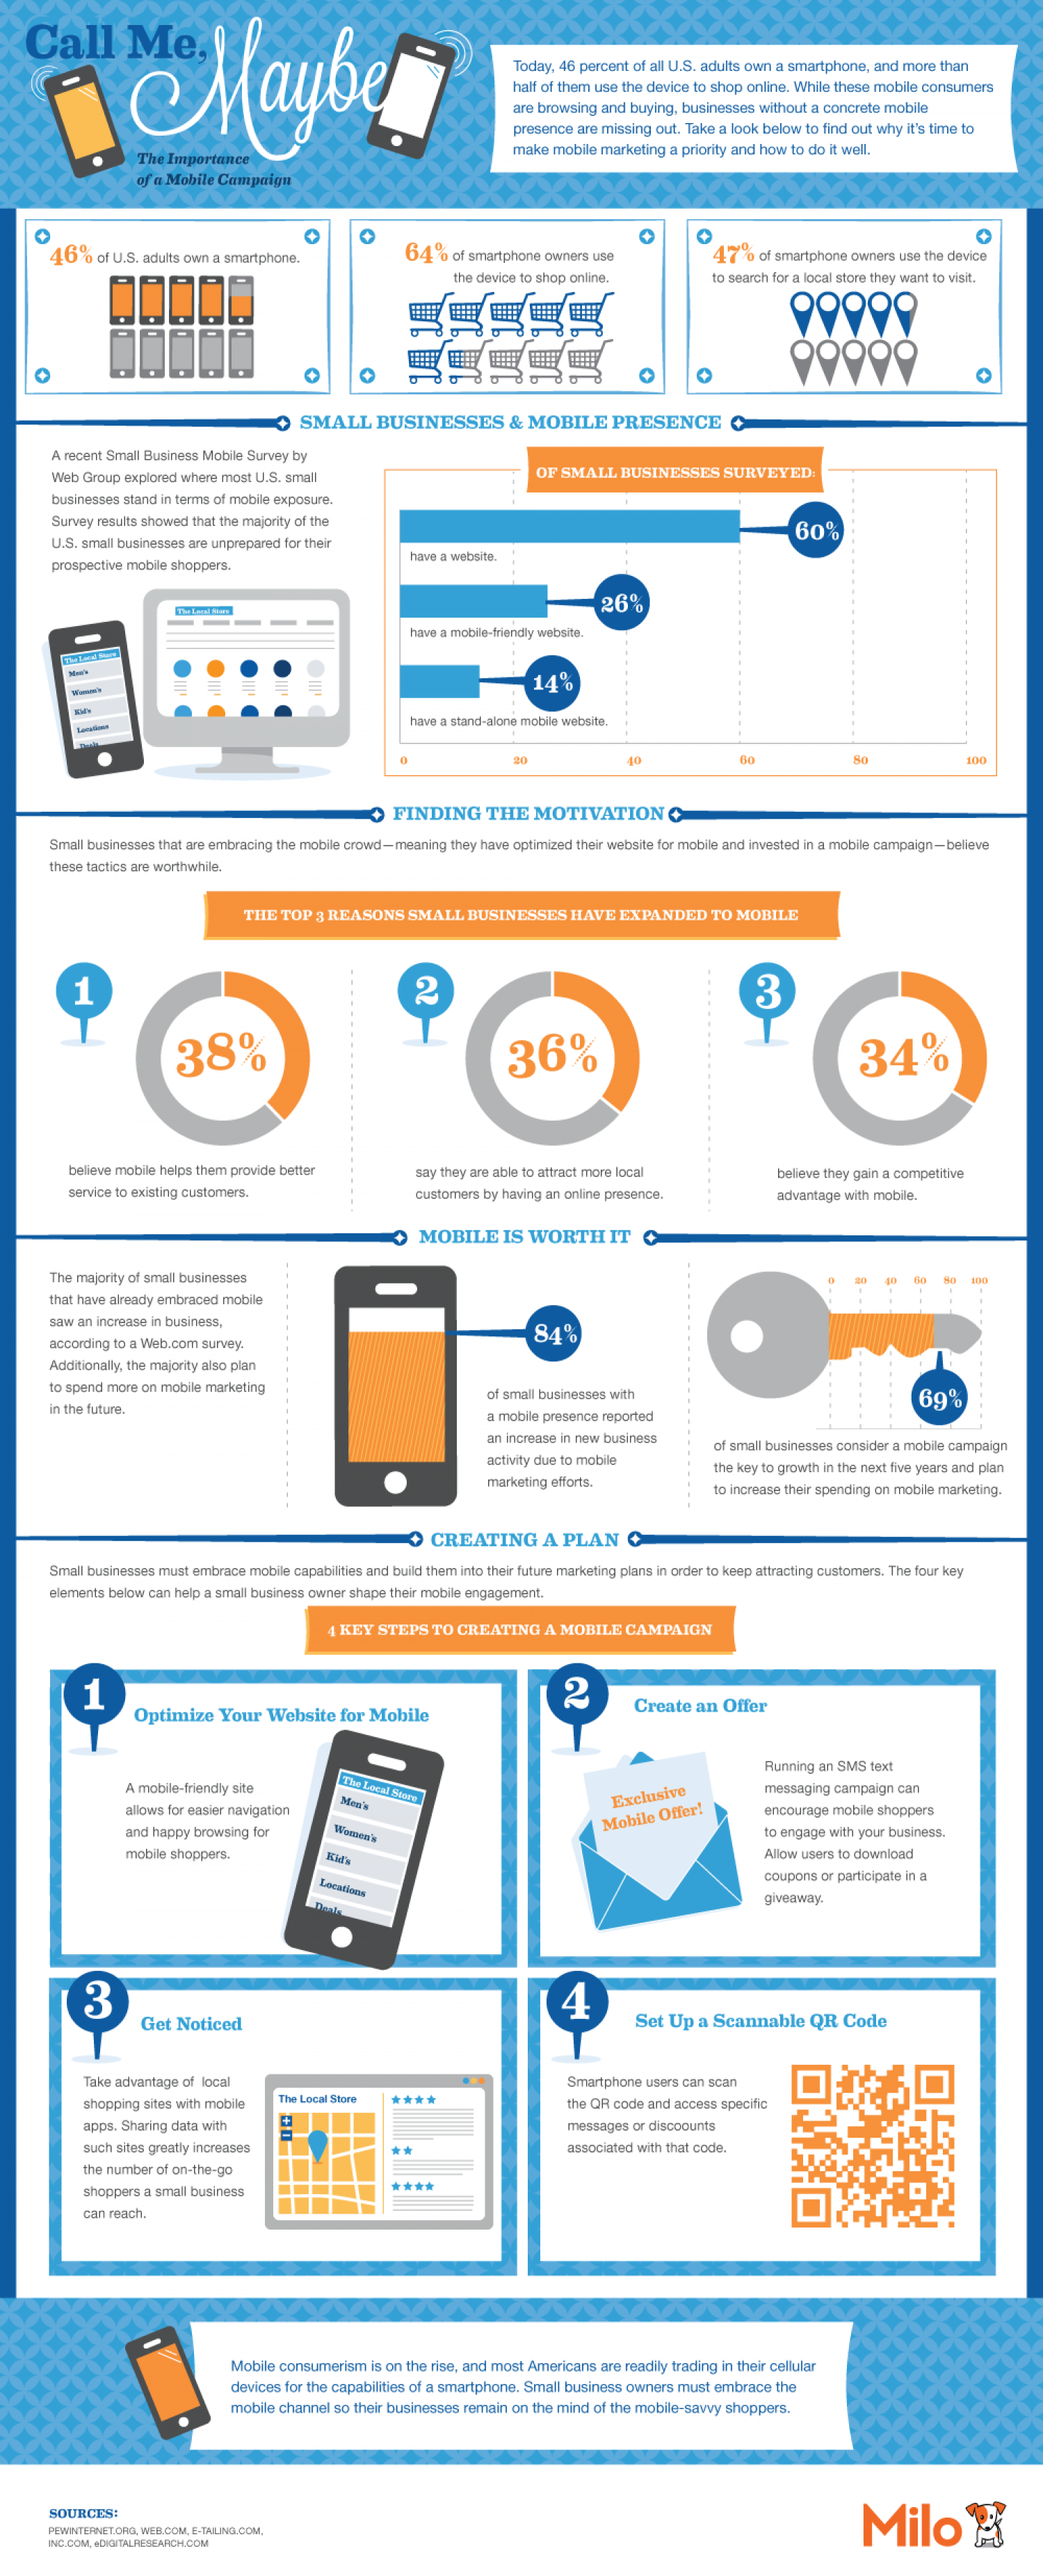 Call Me, Maybe: The Importance of a Mobile Campaign Infographic